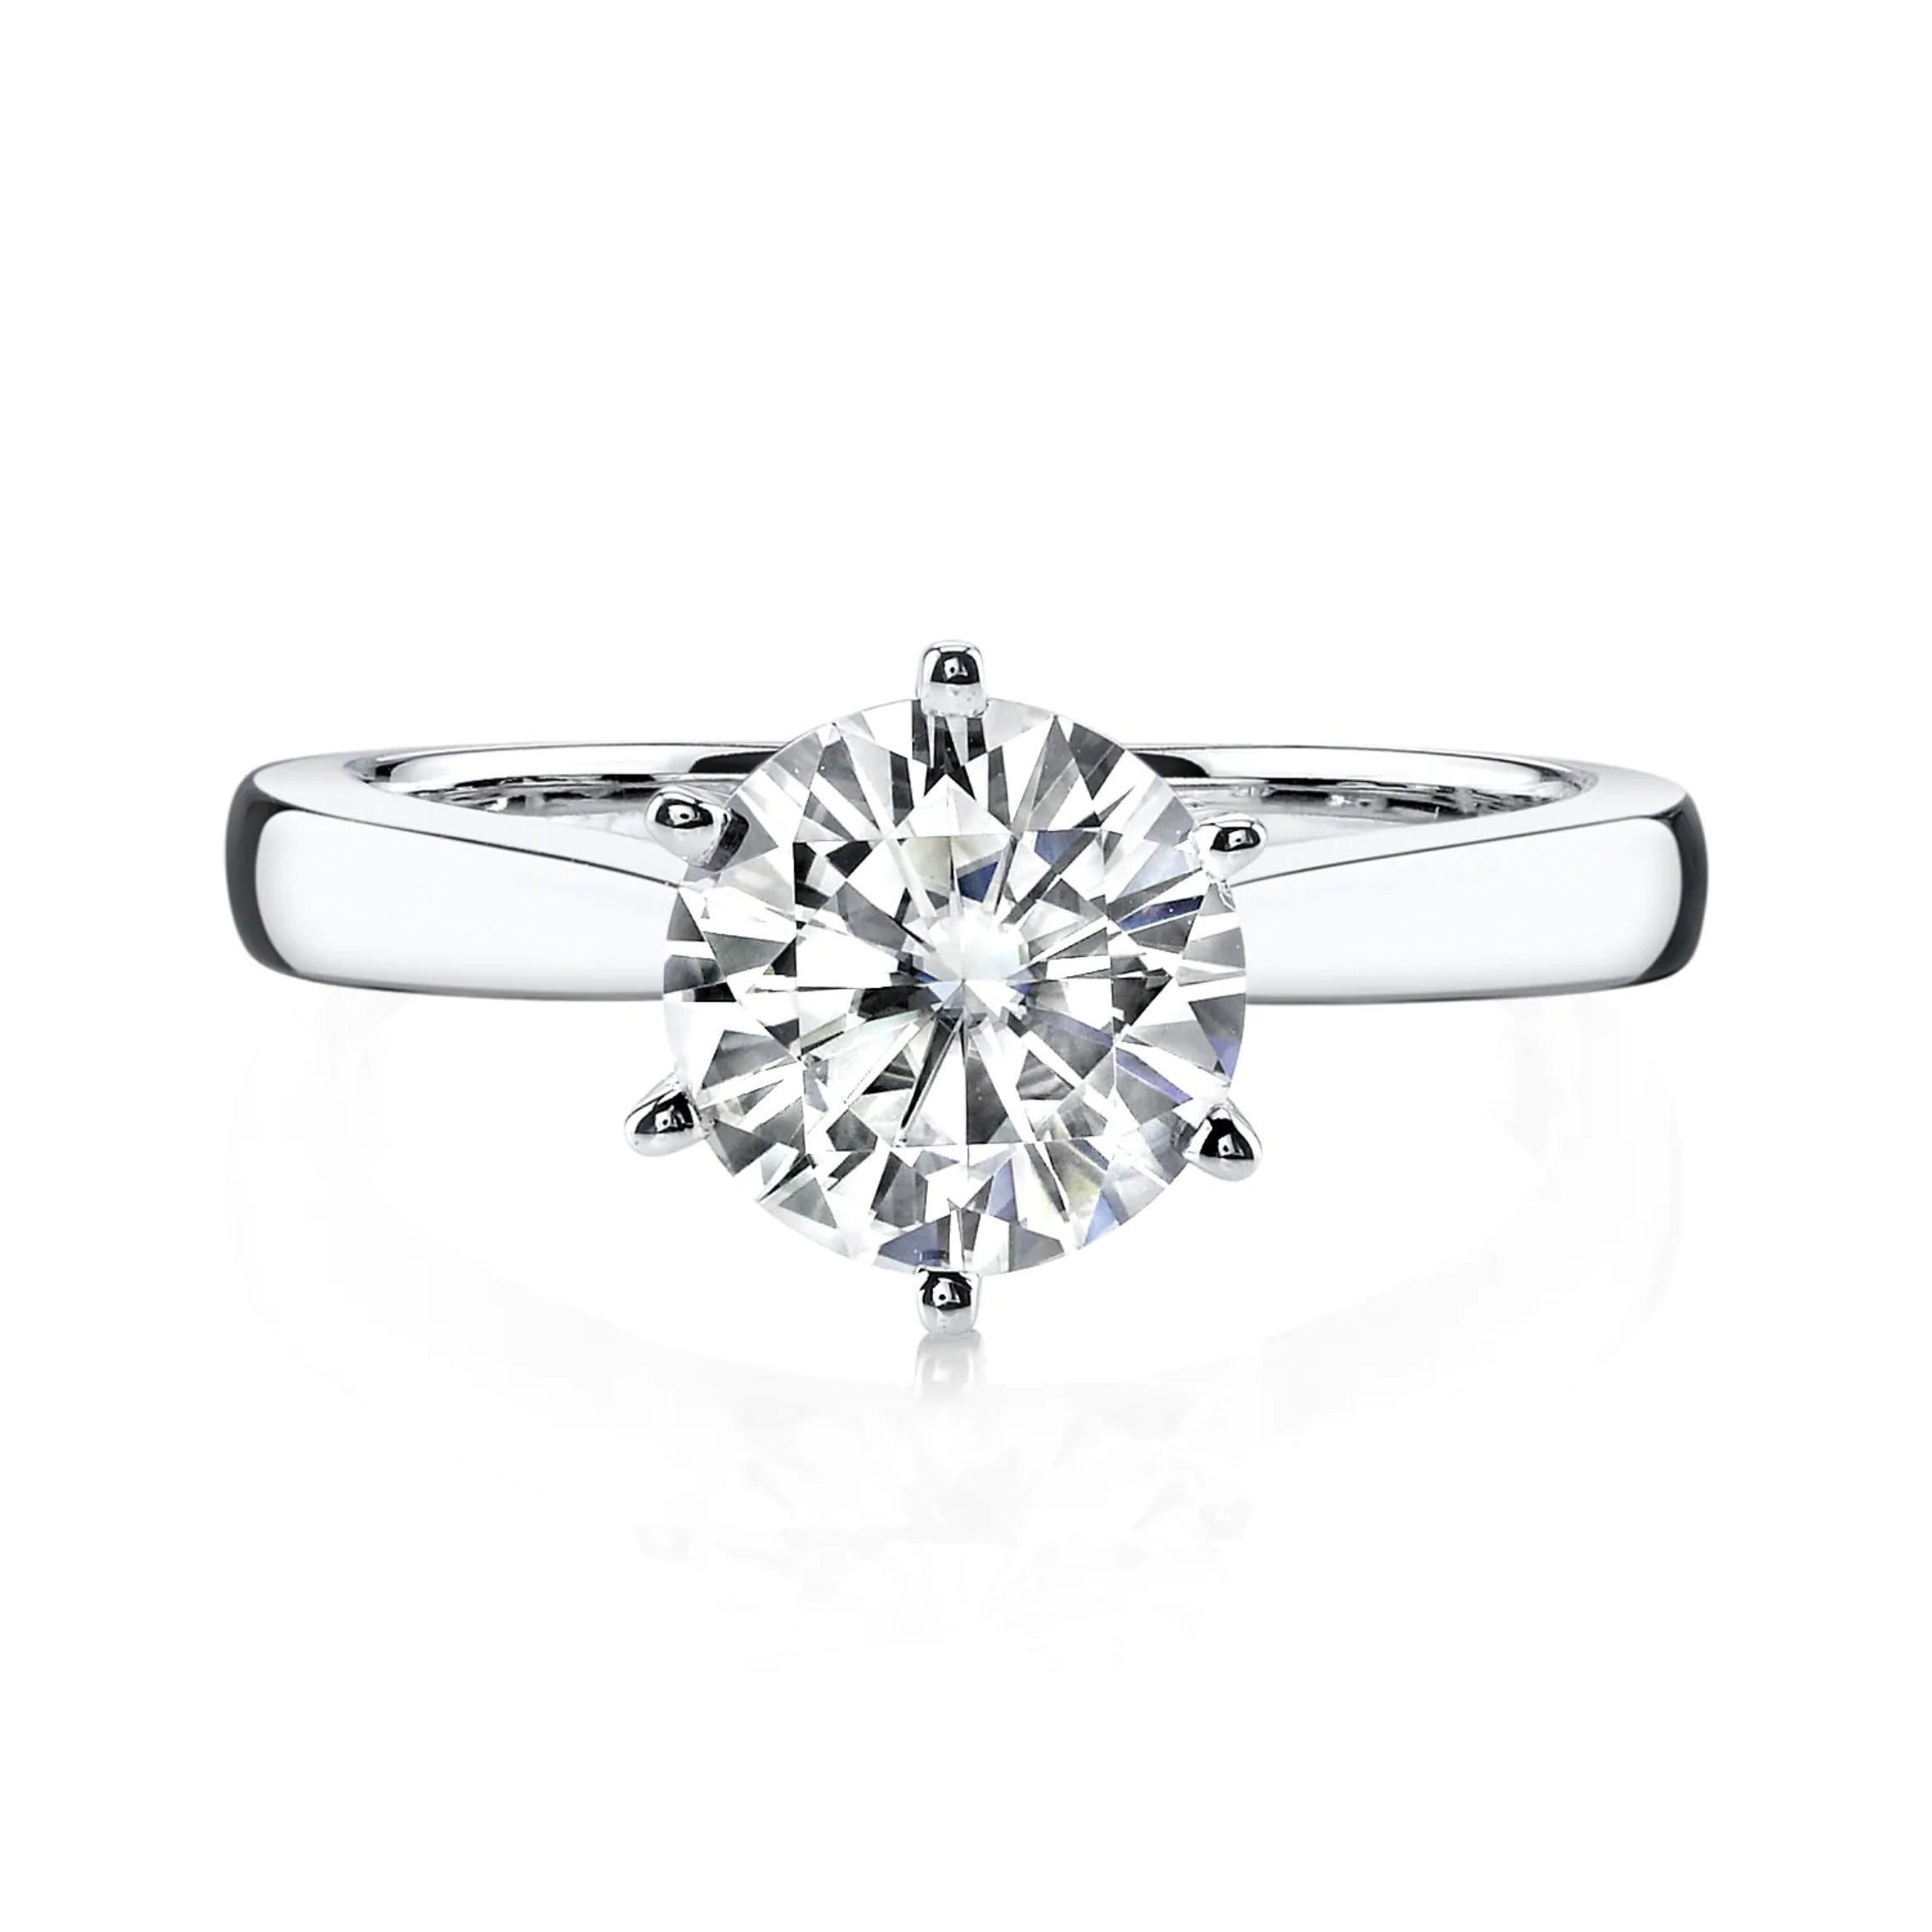 Other Fine Rings Real 14k White Gold Ring 1.90 Ct Diamond Solitaire Engagement Band Sets Size N Clearance Price